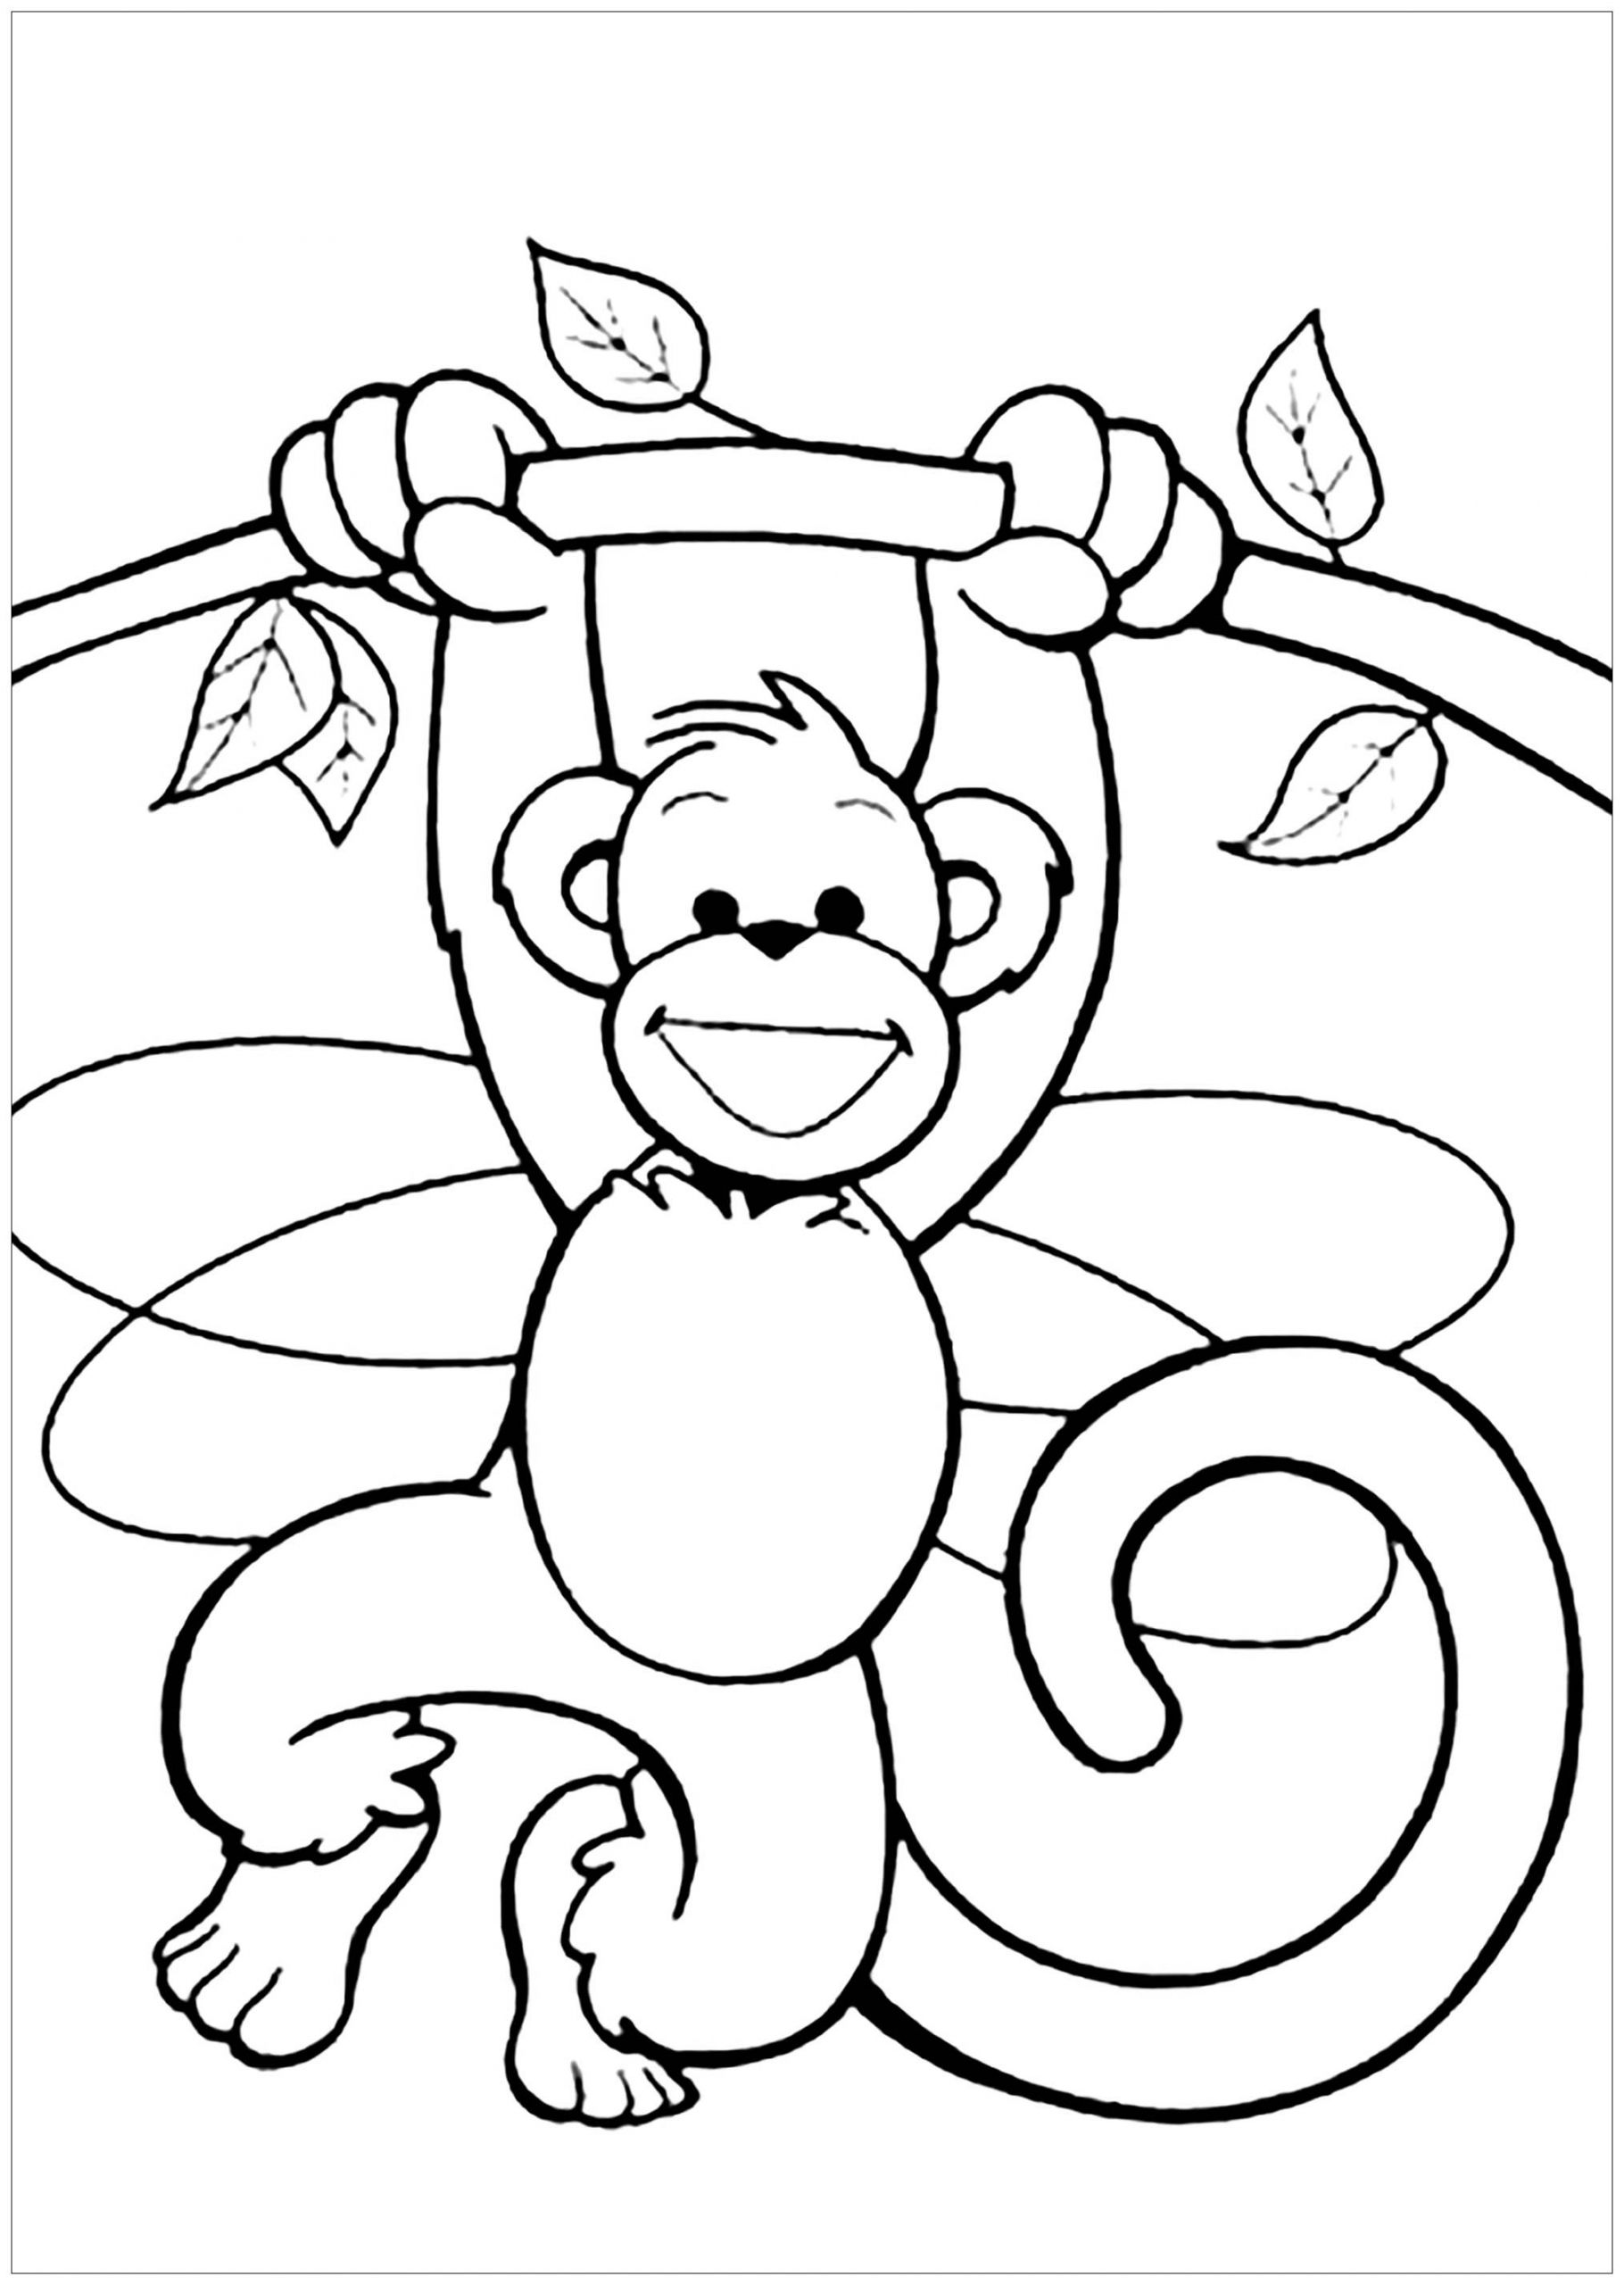 Printable Coloring Pages Kids  Monkeys to for free Monkeys Kids Coloring Pages